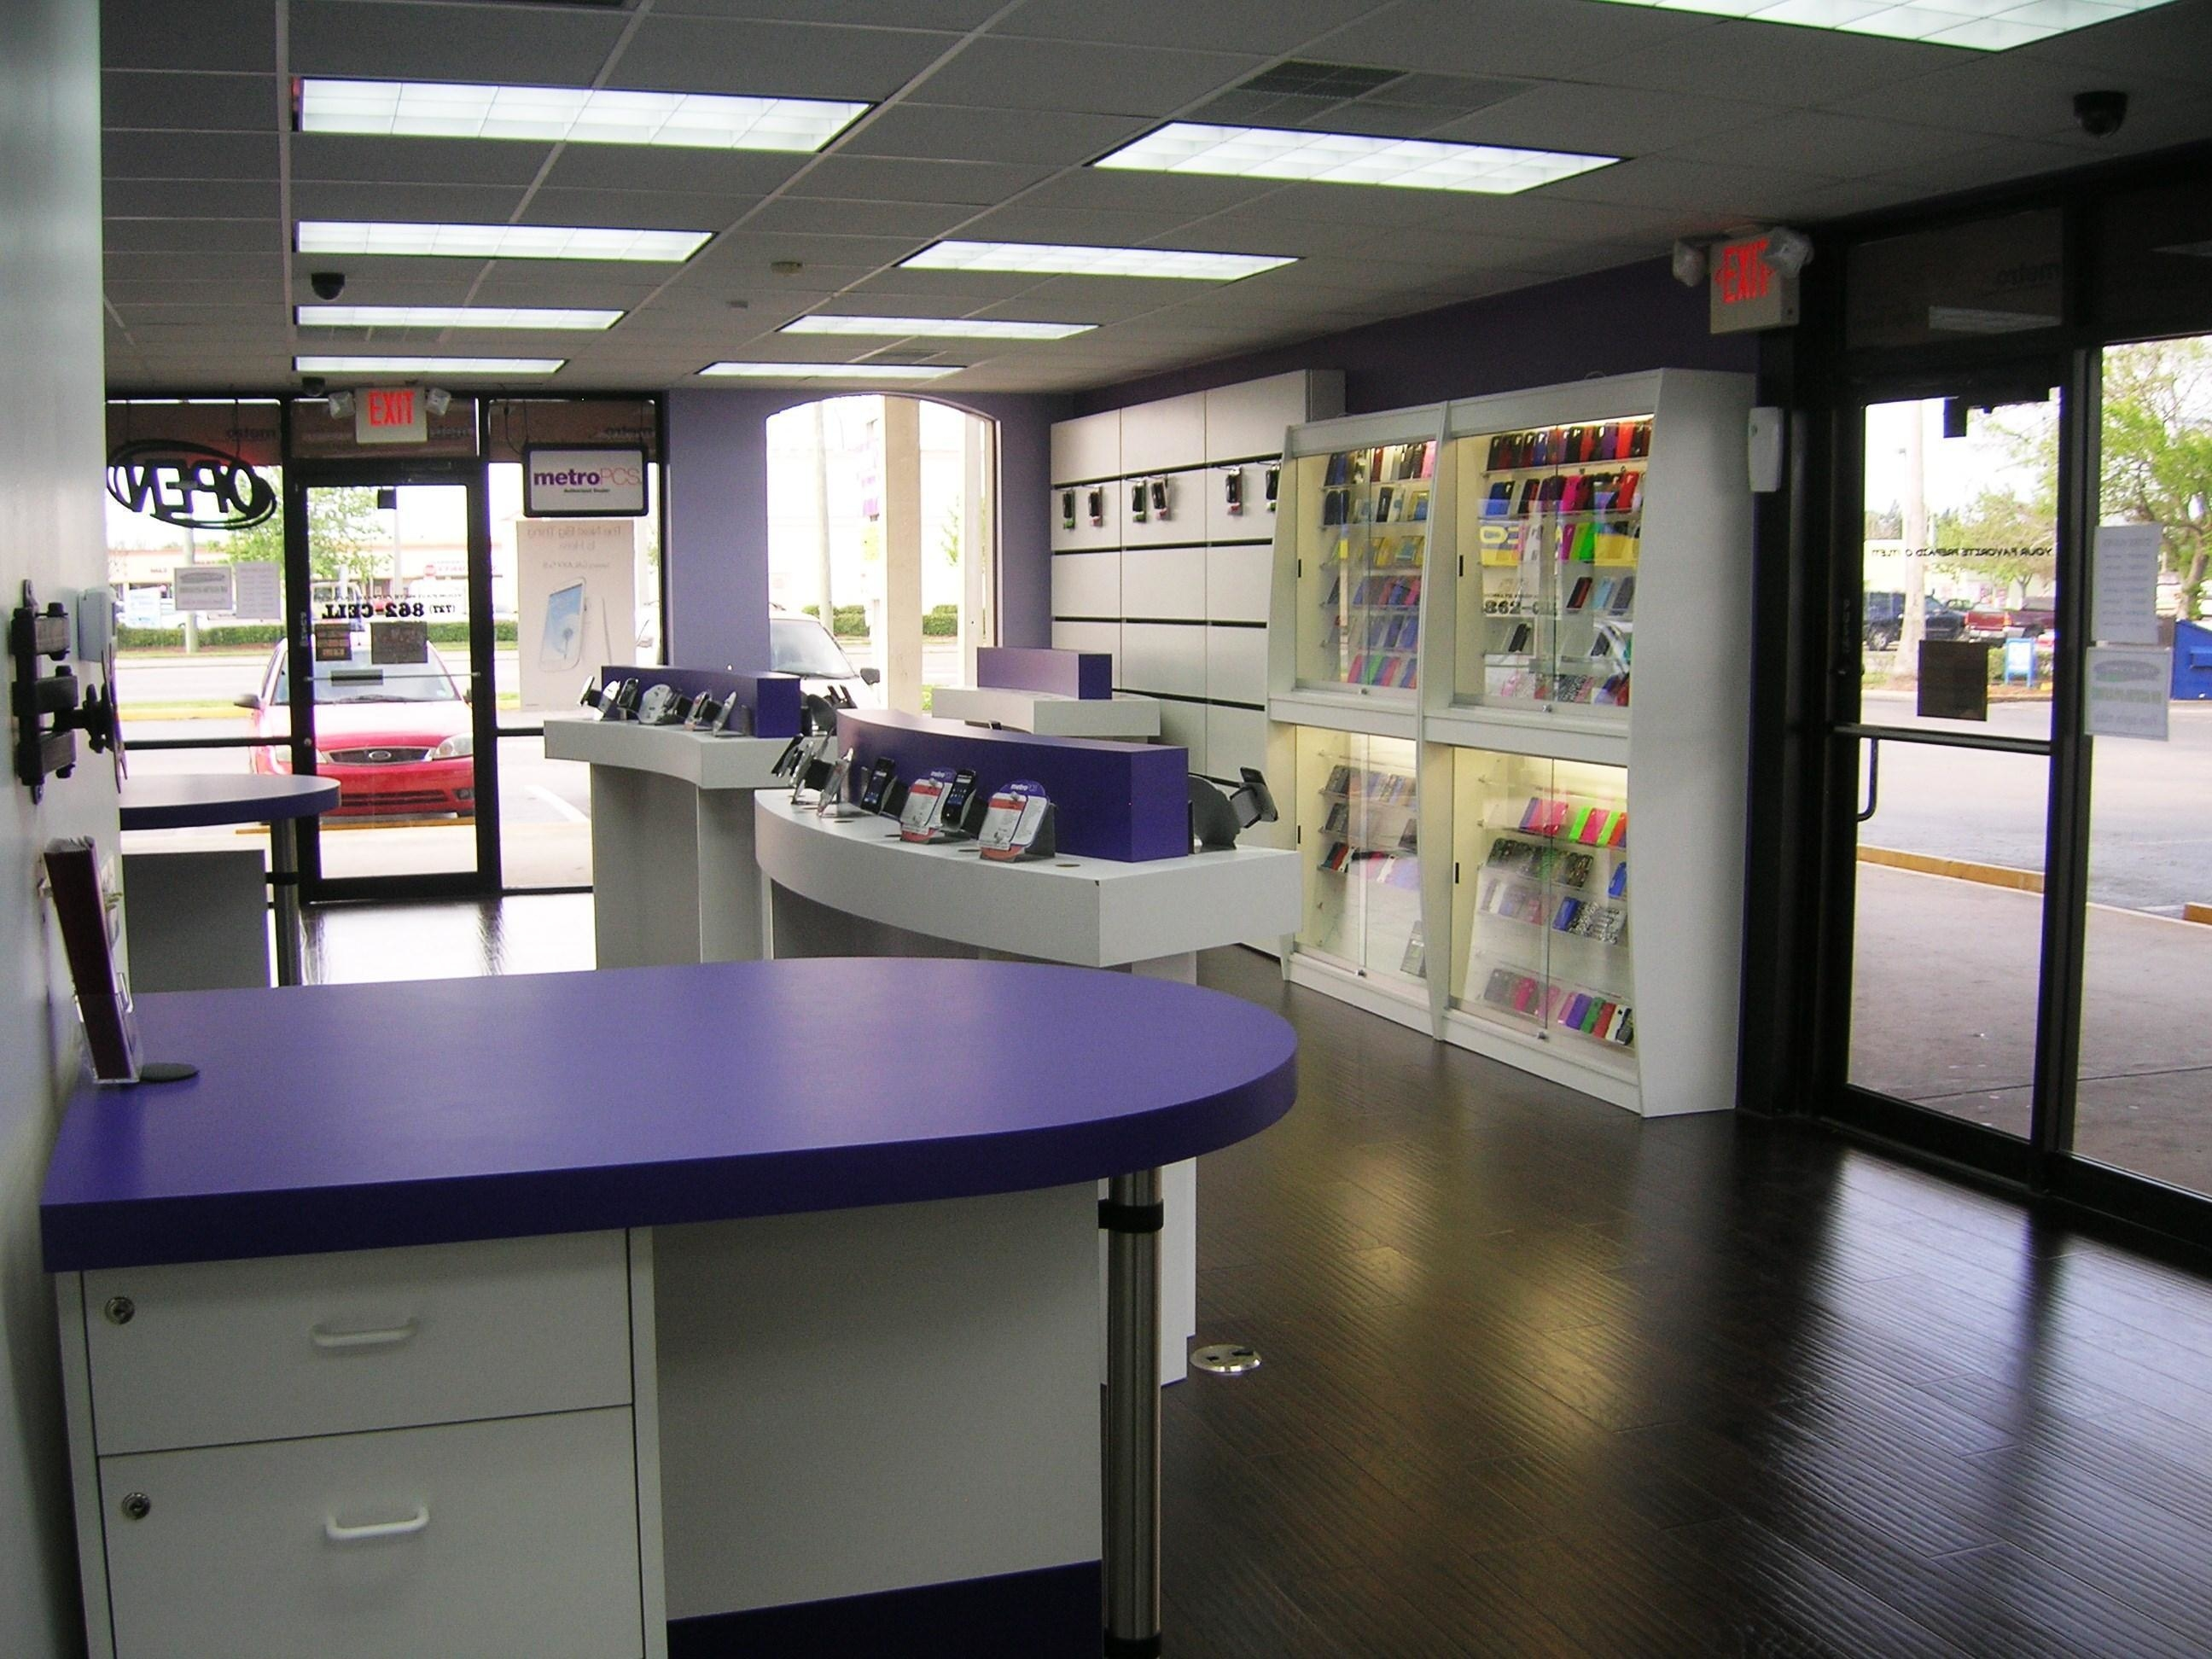 Find a MetroPCS® store near you. Use the locator to find the closest cell phone store or shop nearby or to get hours of operation for locations.